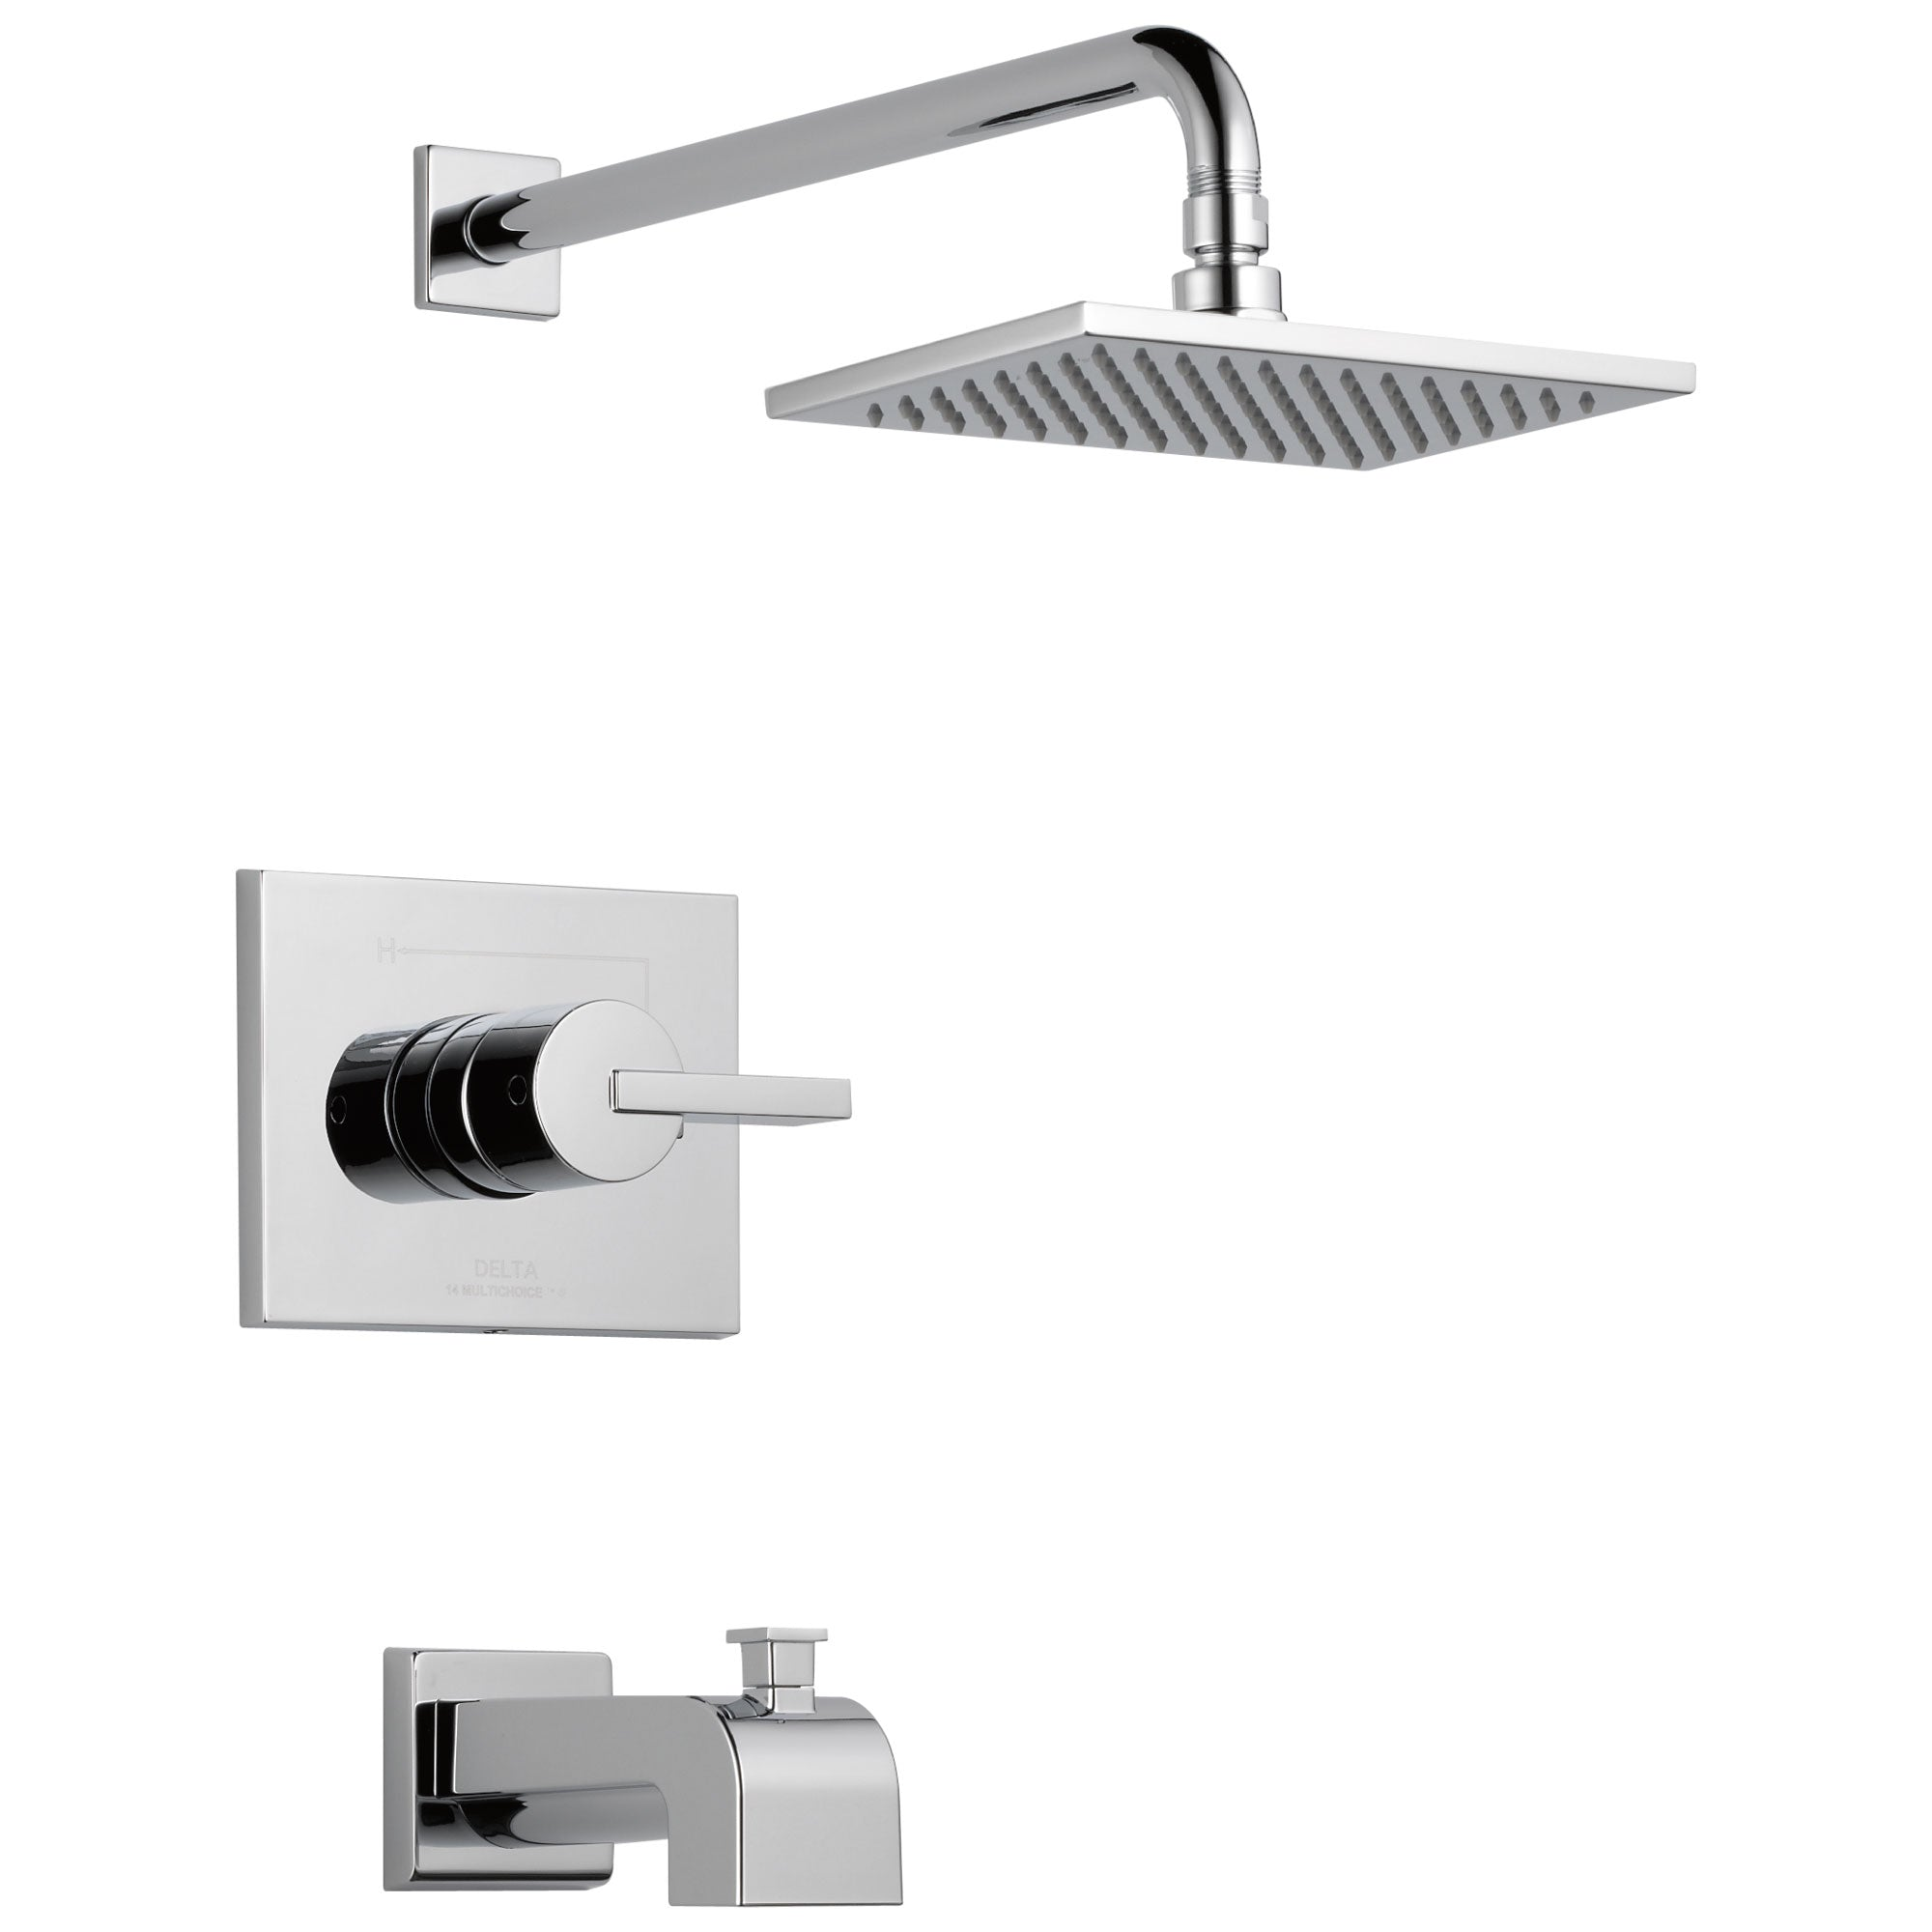 Delta Vero Chrome Finish Monitor 14 Series Water Efficient Tub & Shower Combination Faucet Trim Kit (Requires Valve) DT14453WE